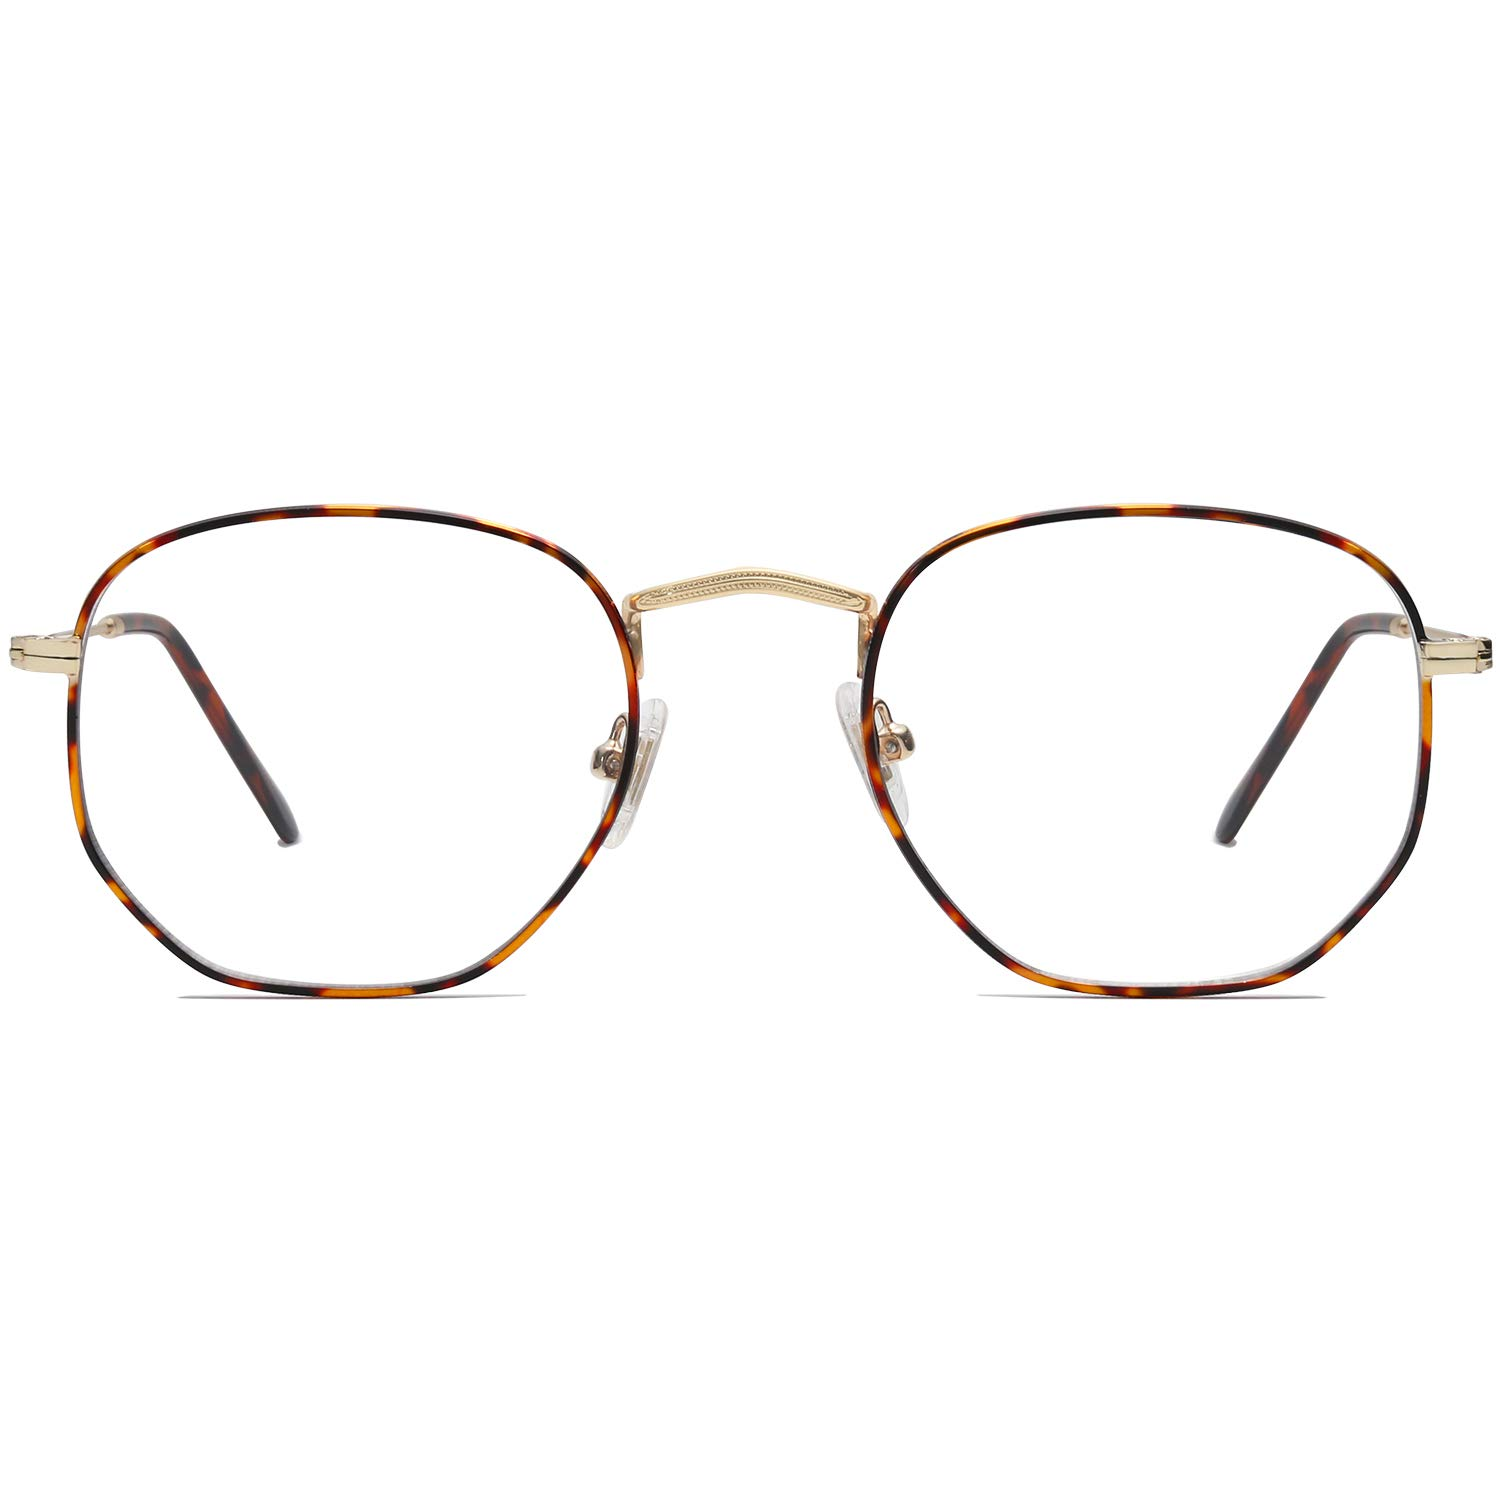 SOJOS Small Square Polarized Sunglasses for Men and Women Polygon Mirrored Lens SJ5036 Gold and Tortoise Frame/Anti-blue Light Lens by SOJOS